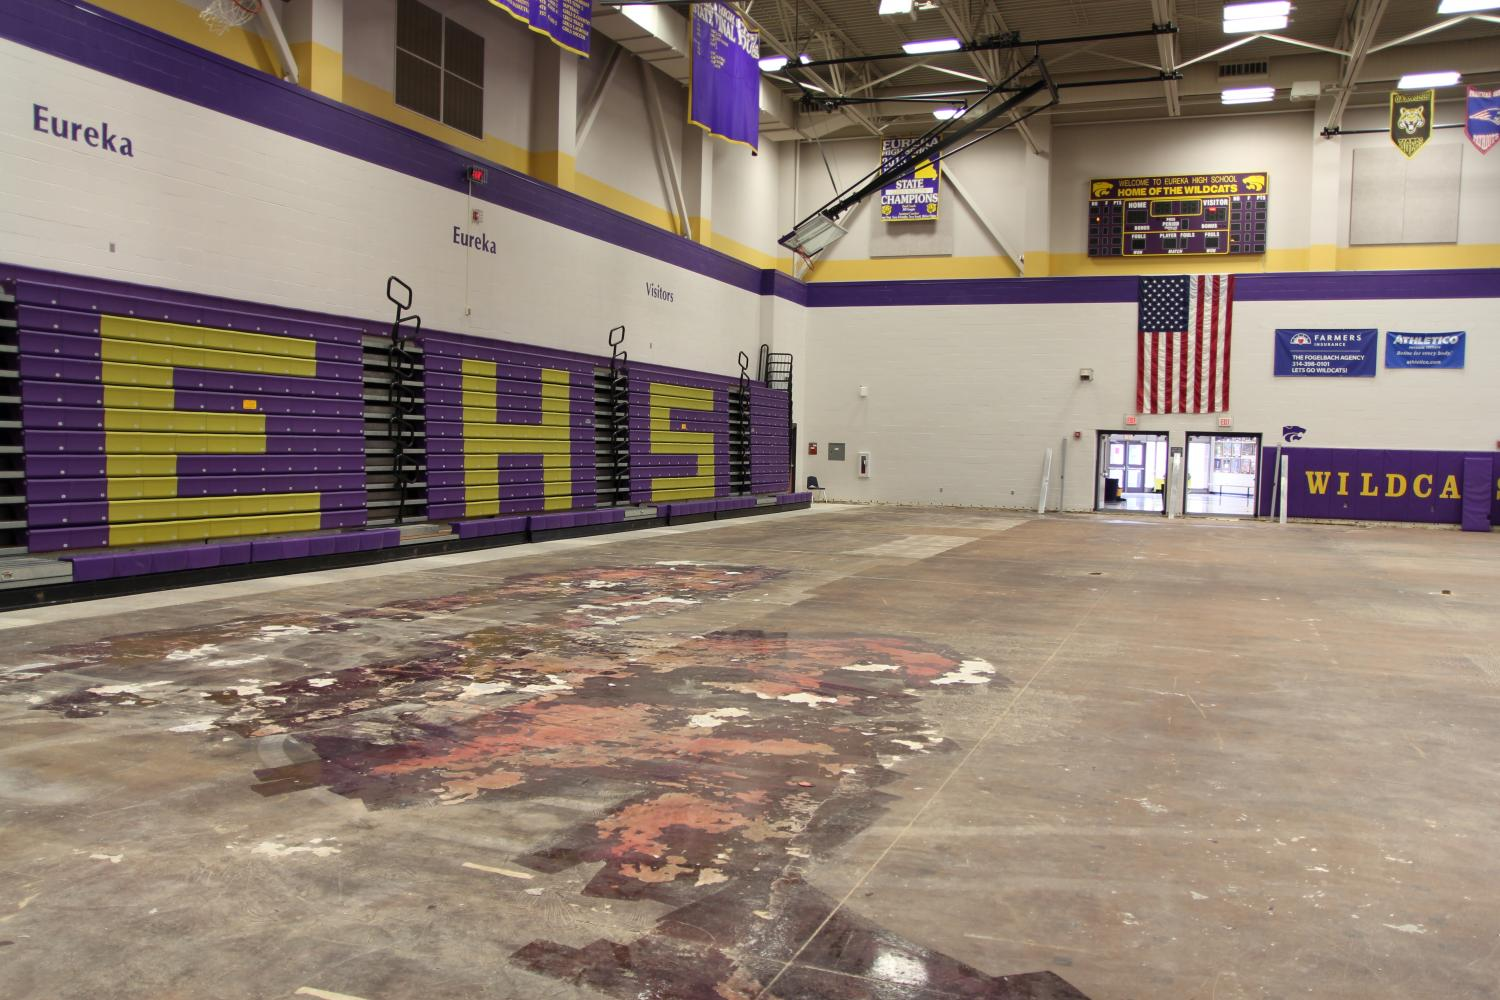 Gym A's wood flooring has been removed due to water damage from the recent flooding, May 11.